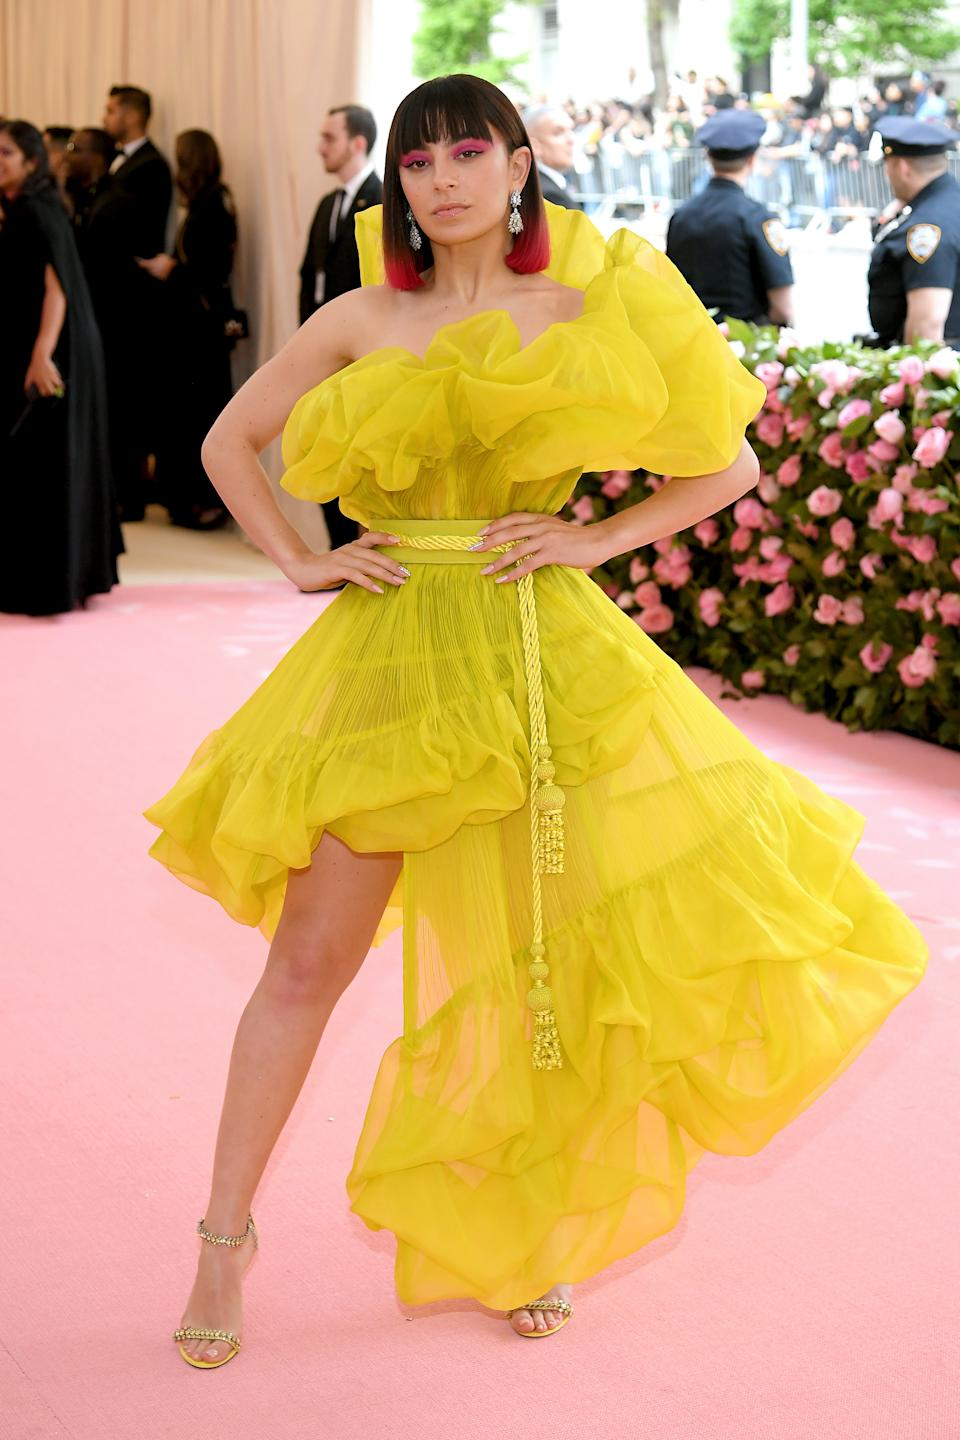 The hitmaker made a very bright statement in a bold ruffled yellow ensemble which she matched with pink makeup and pink hair tips. Photo: Getty Images